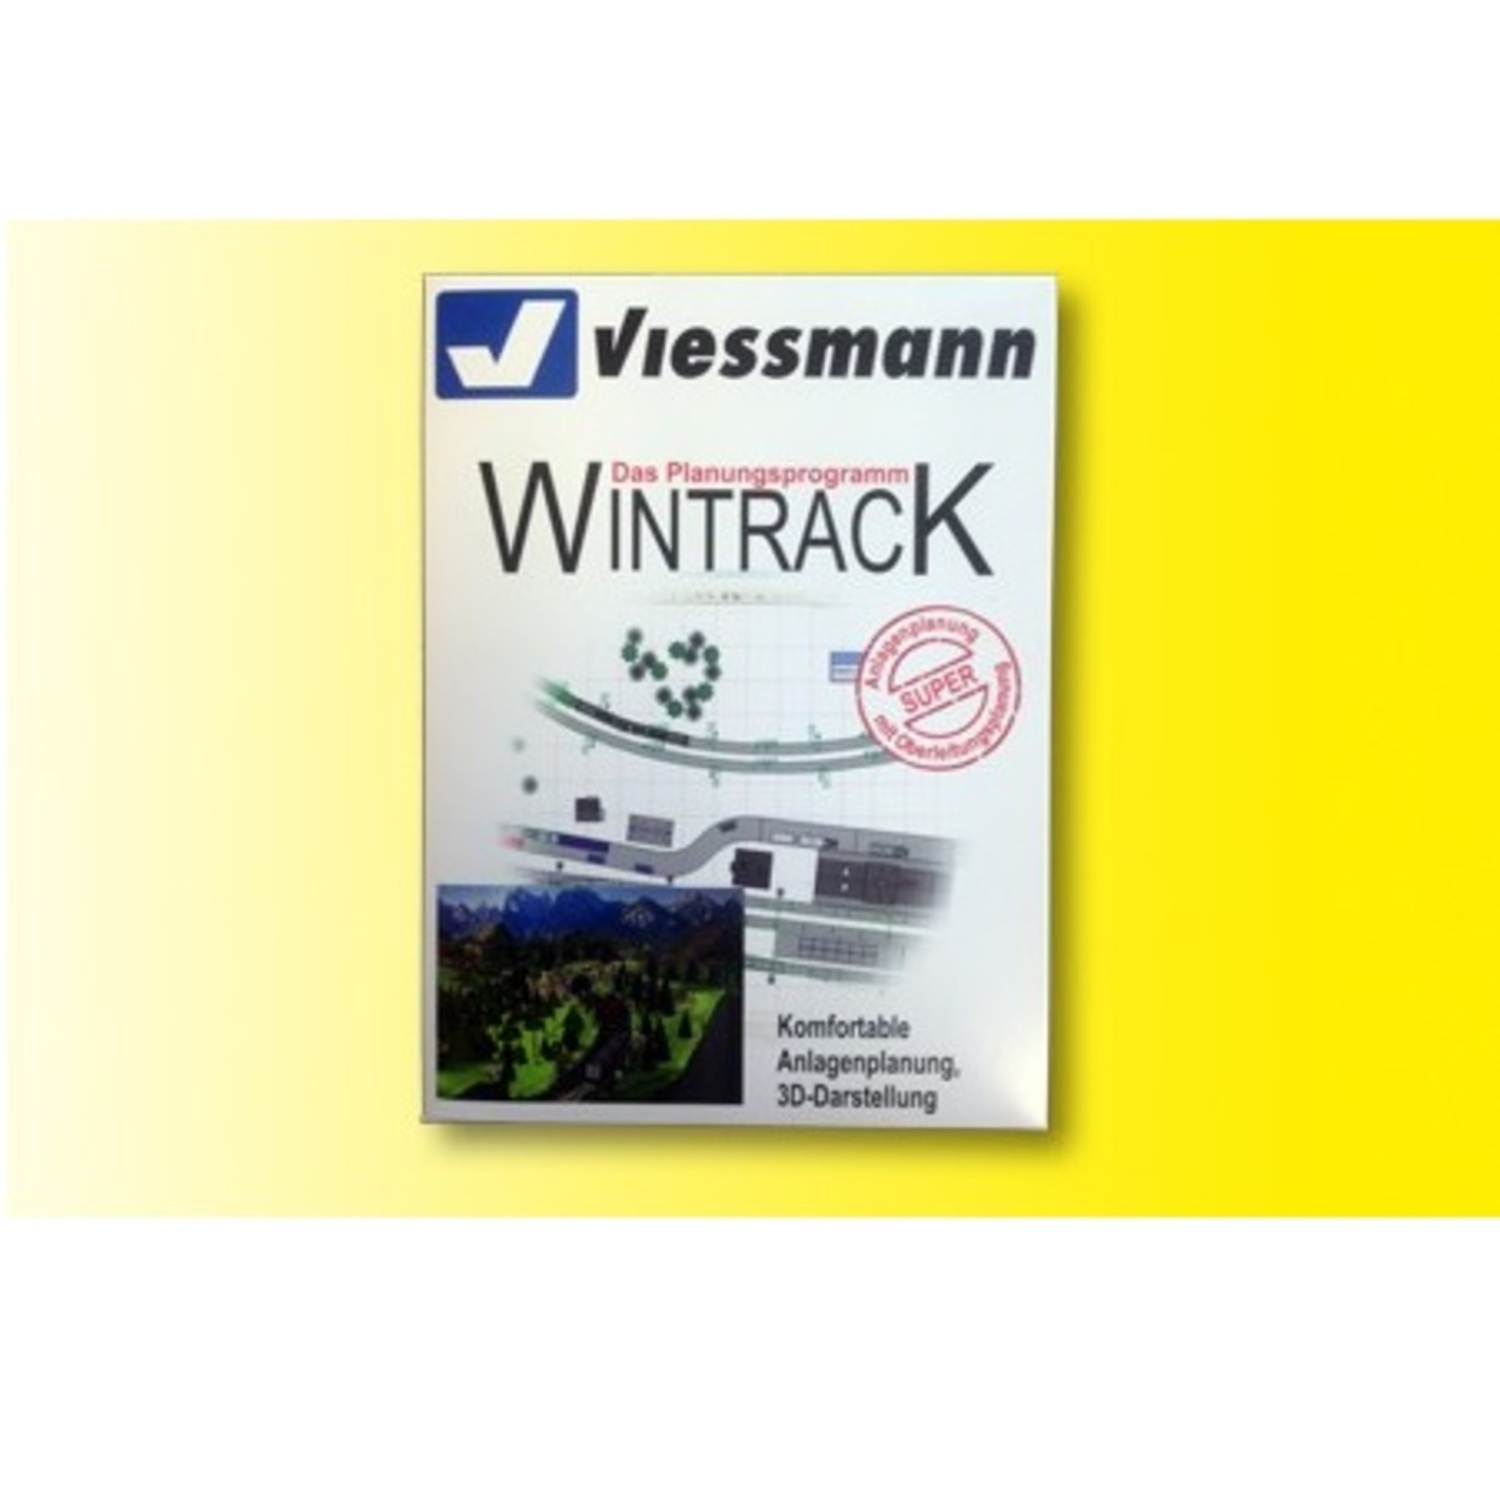 WINTRACK 13.0 Vollversion mit 3D